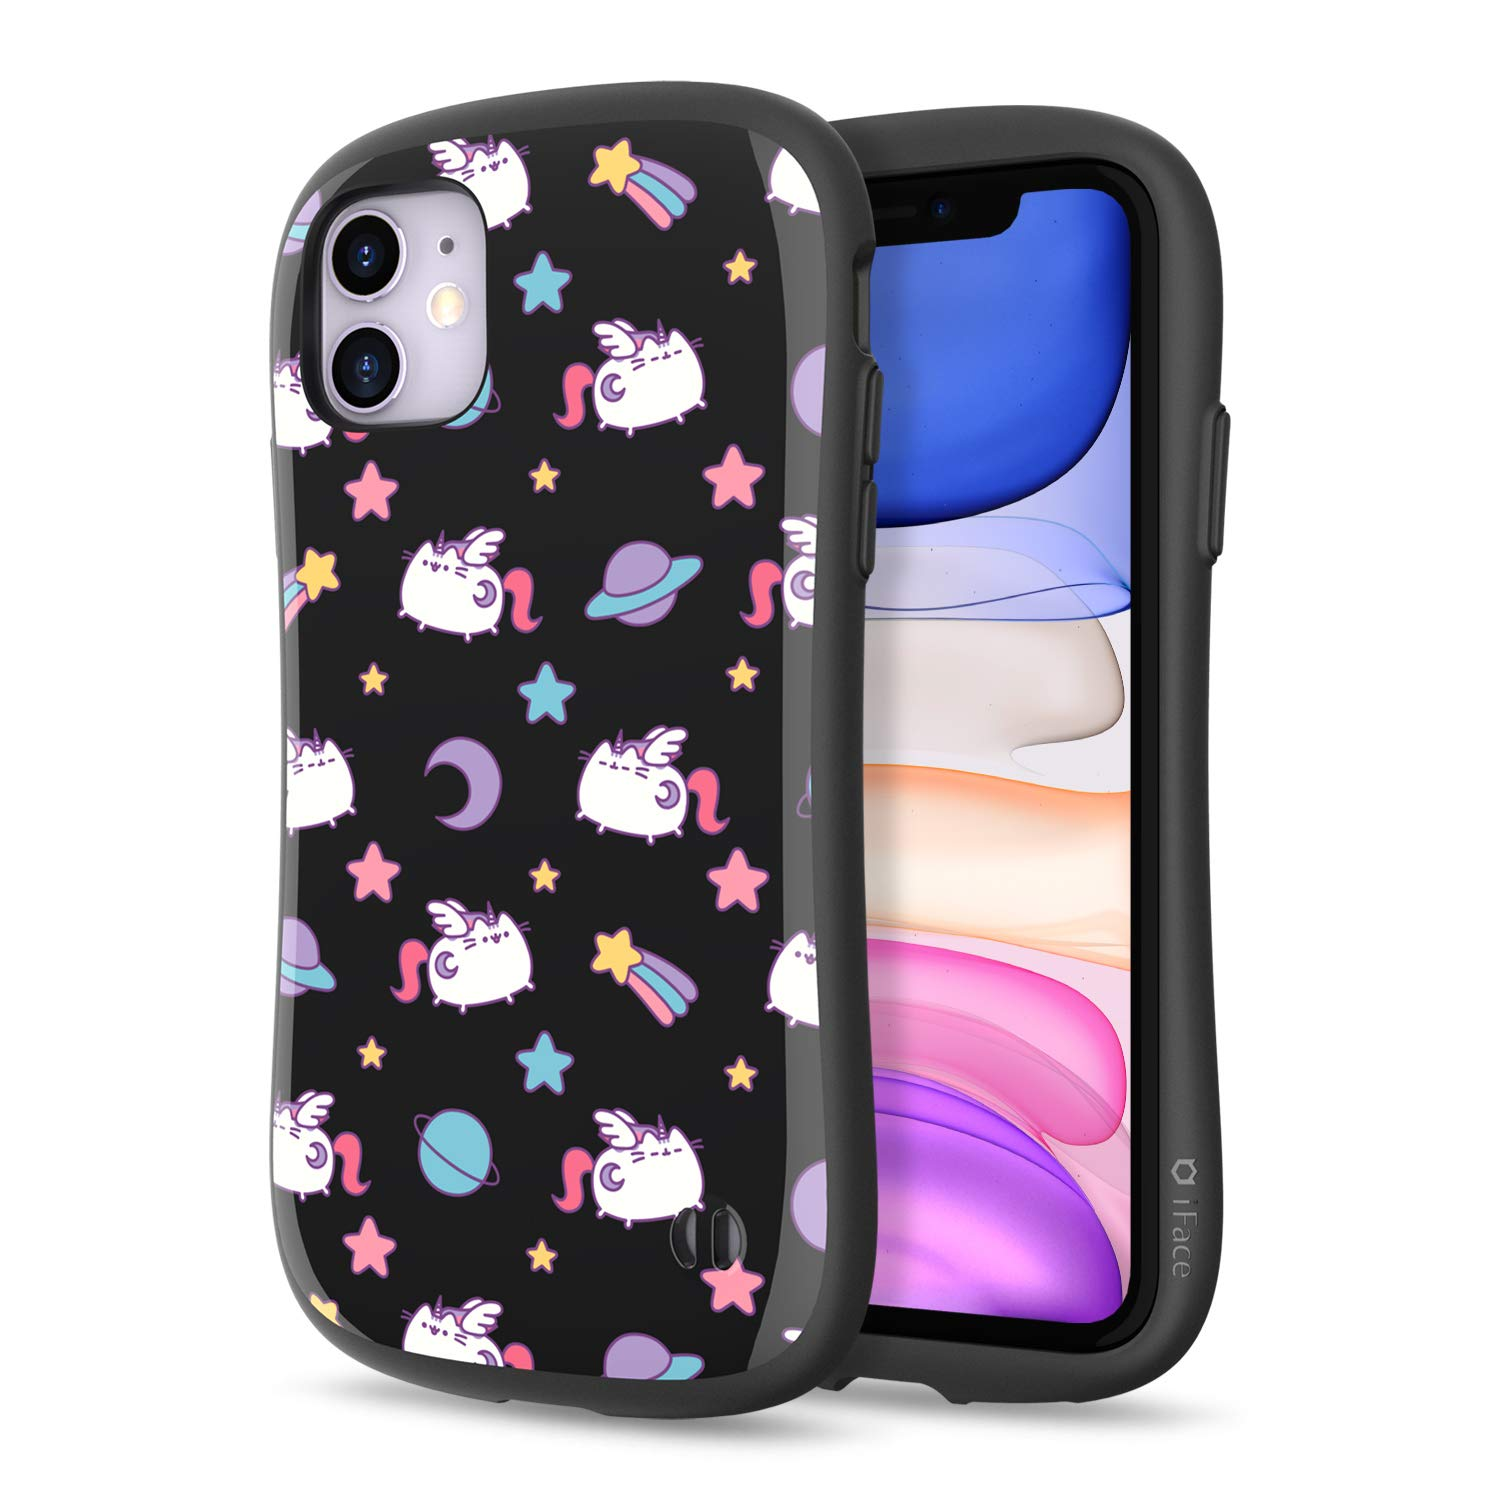 iFace x Pusheen The Cat First Class Series iPhone 11 Case – Cute Dual Layer [TPU and Polycarbonate] Hybrid Shockproof Protective Cover for Women [Drop Tested] - Pusheenicorn Black Pattern